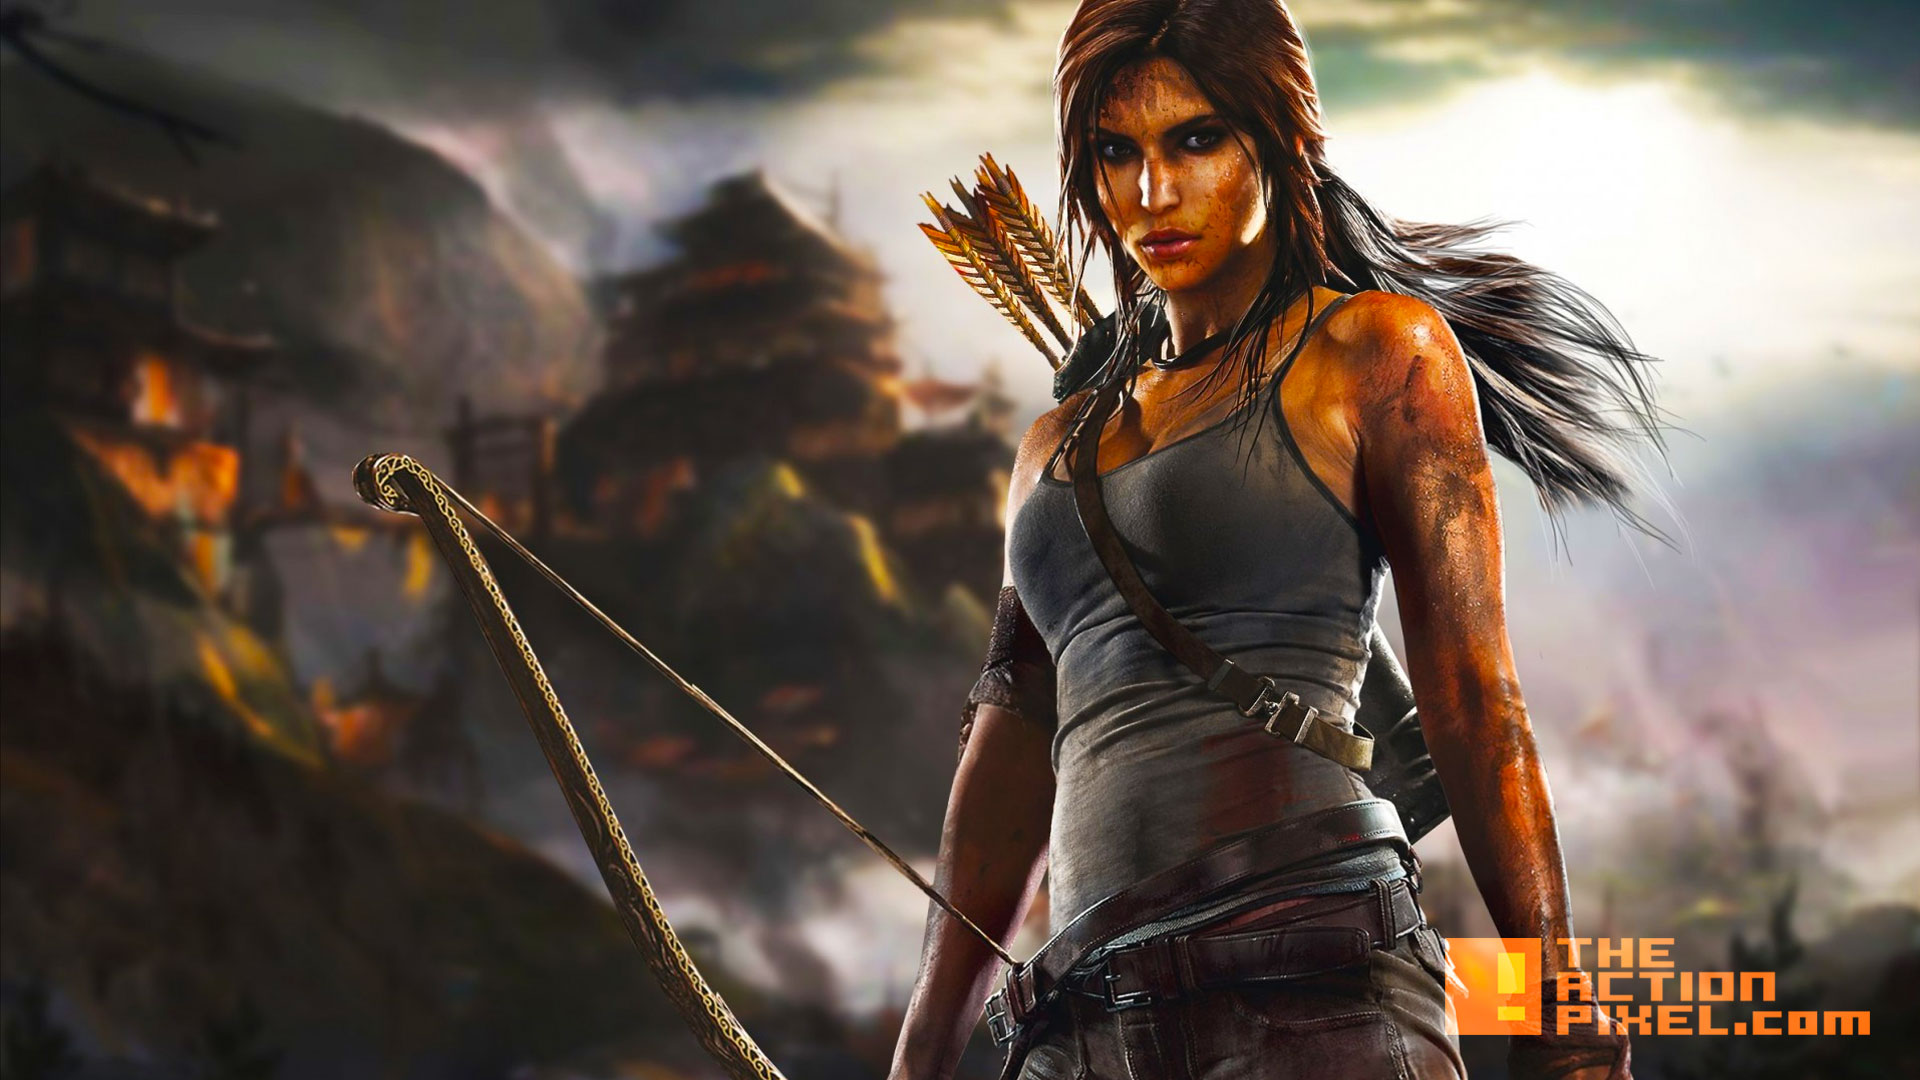 tomb raider. lara croft. square enix. the action pixel. @theactionpixel